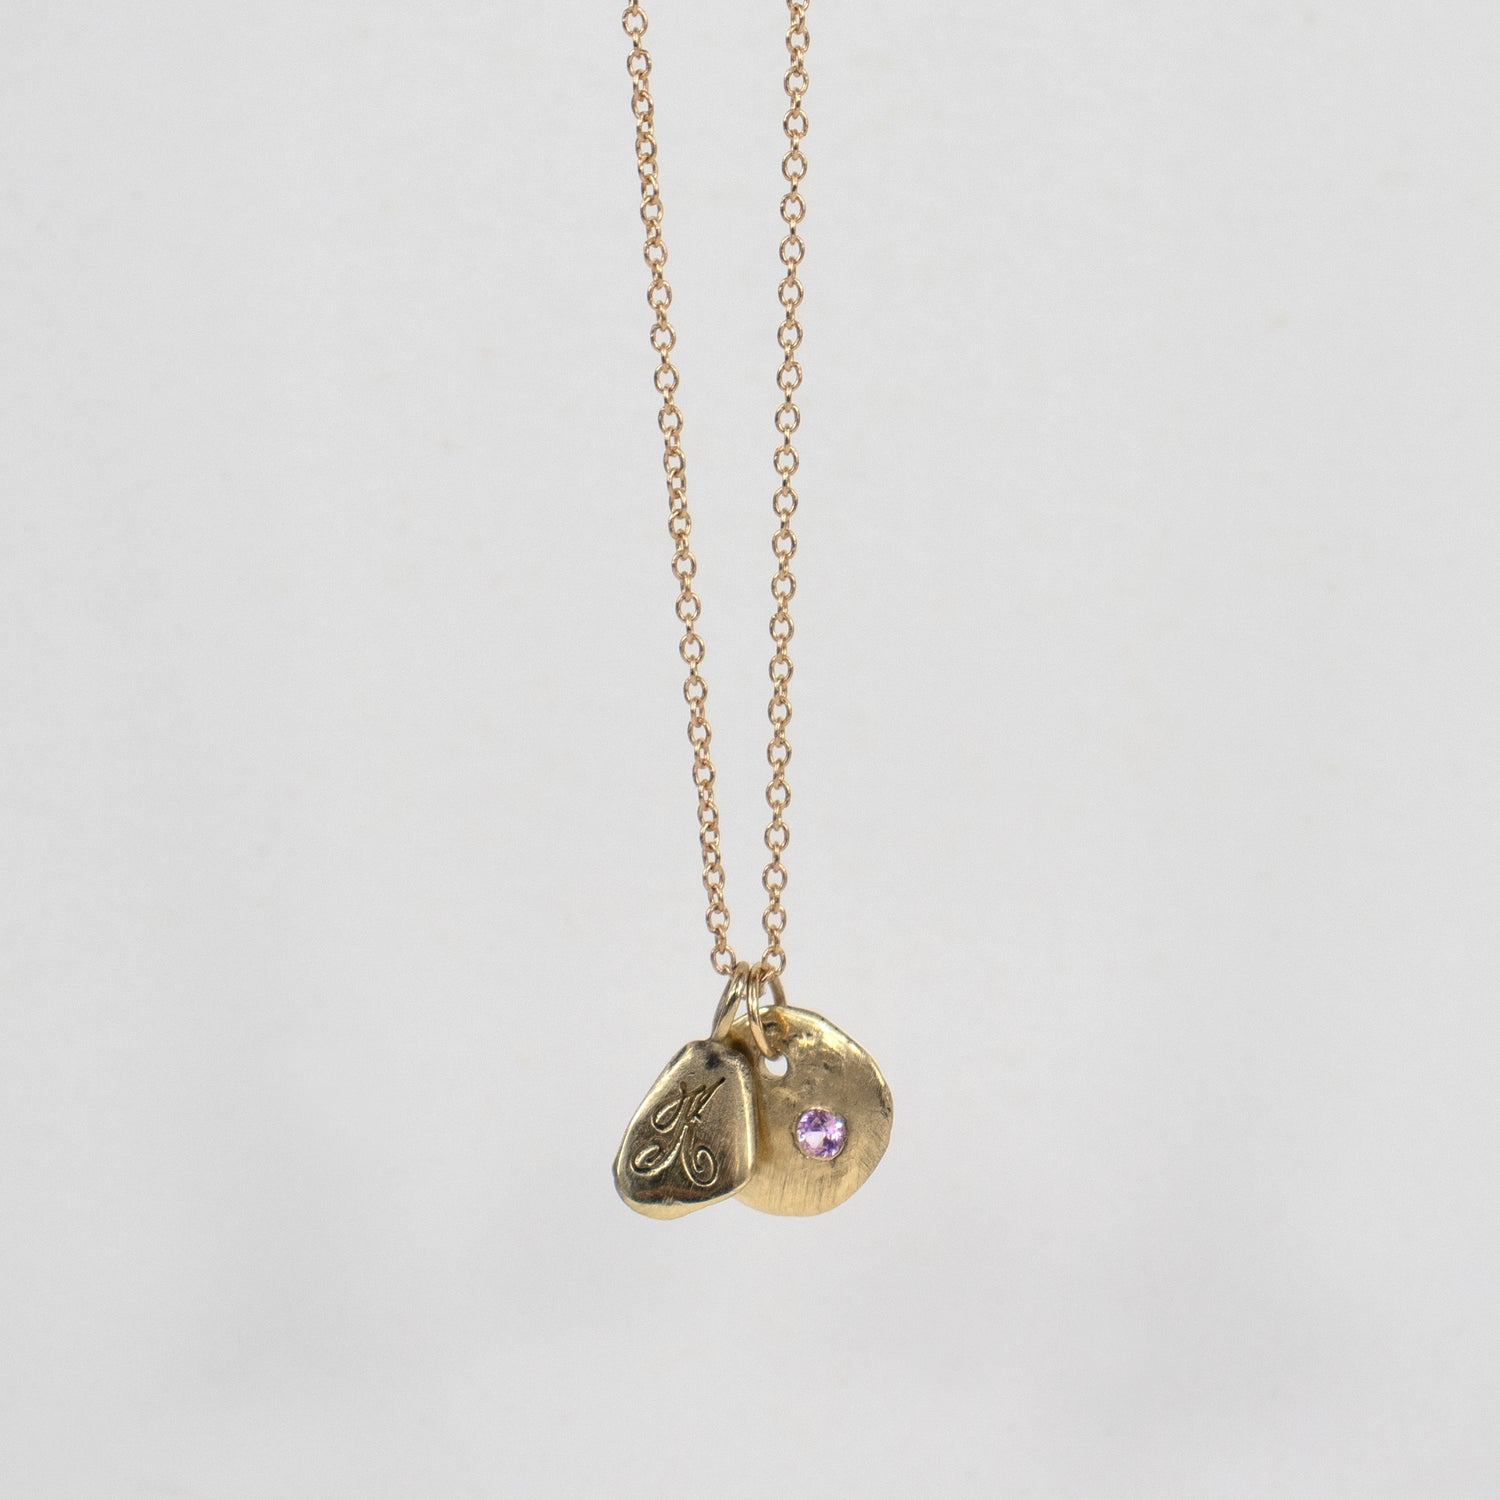 Image of 14k Gold Maine Rock & Kria Tag Necklace w/ Baby Pink Sapphire